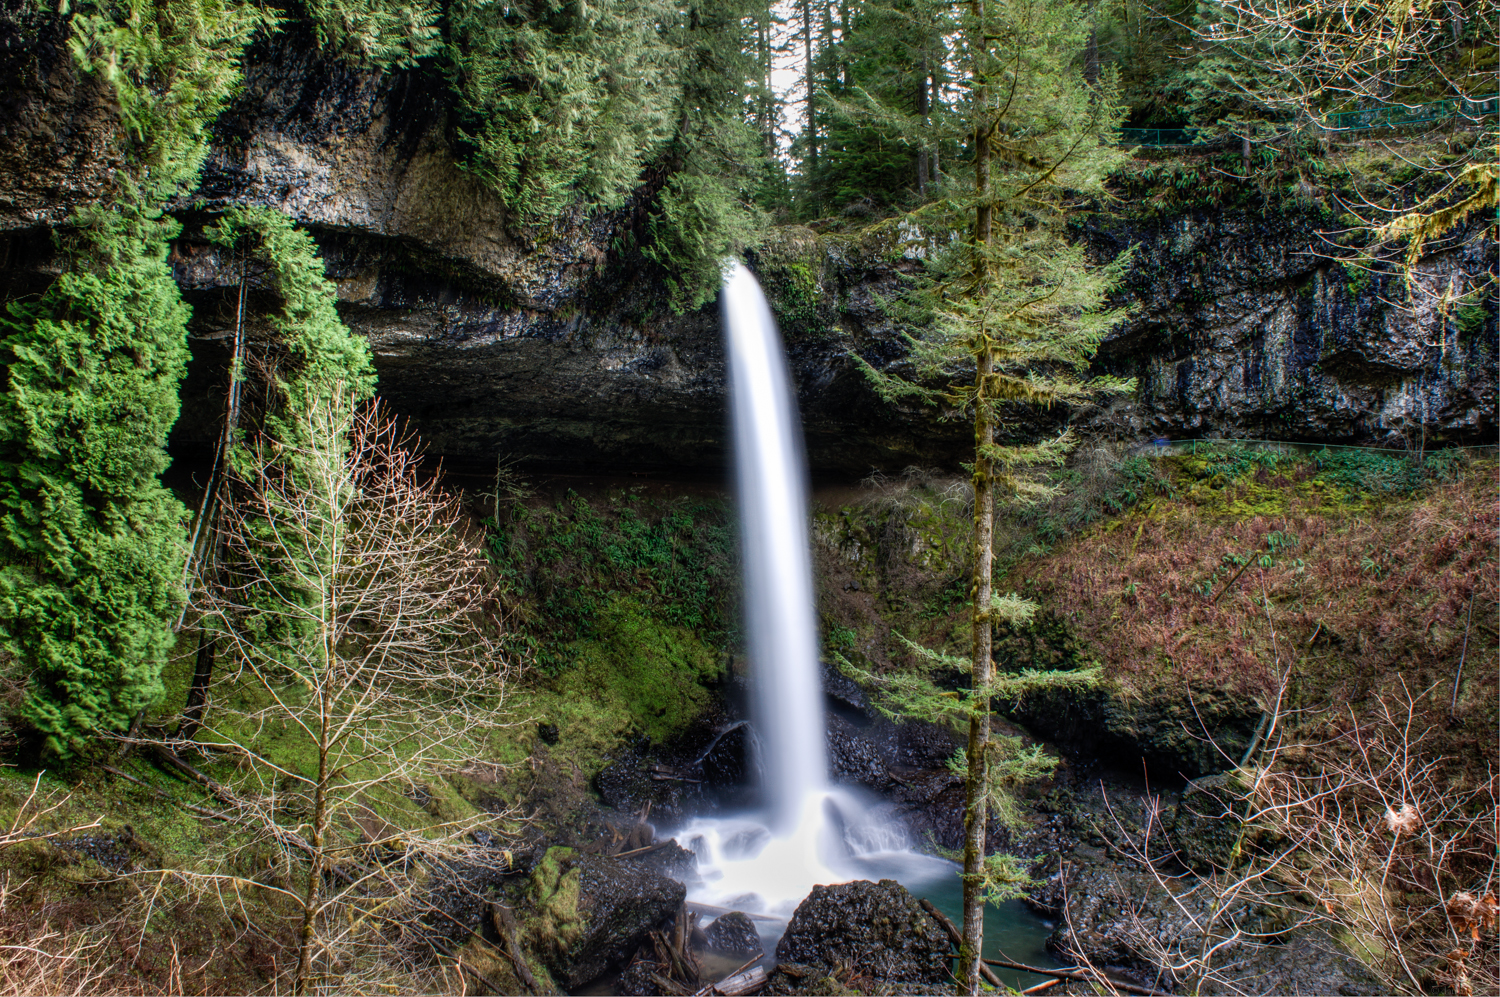 North Silver Falls | 365 Project | Feb 18th, 2013